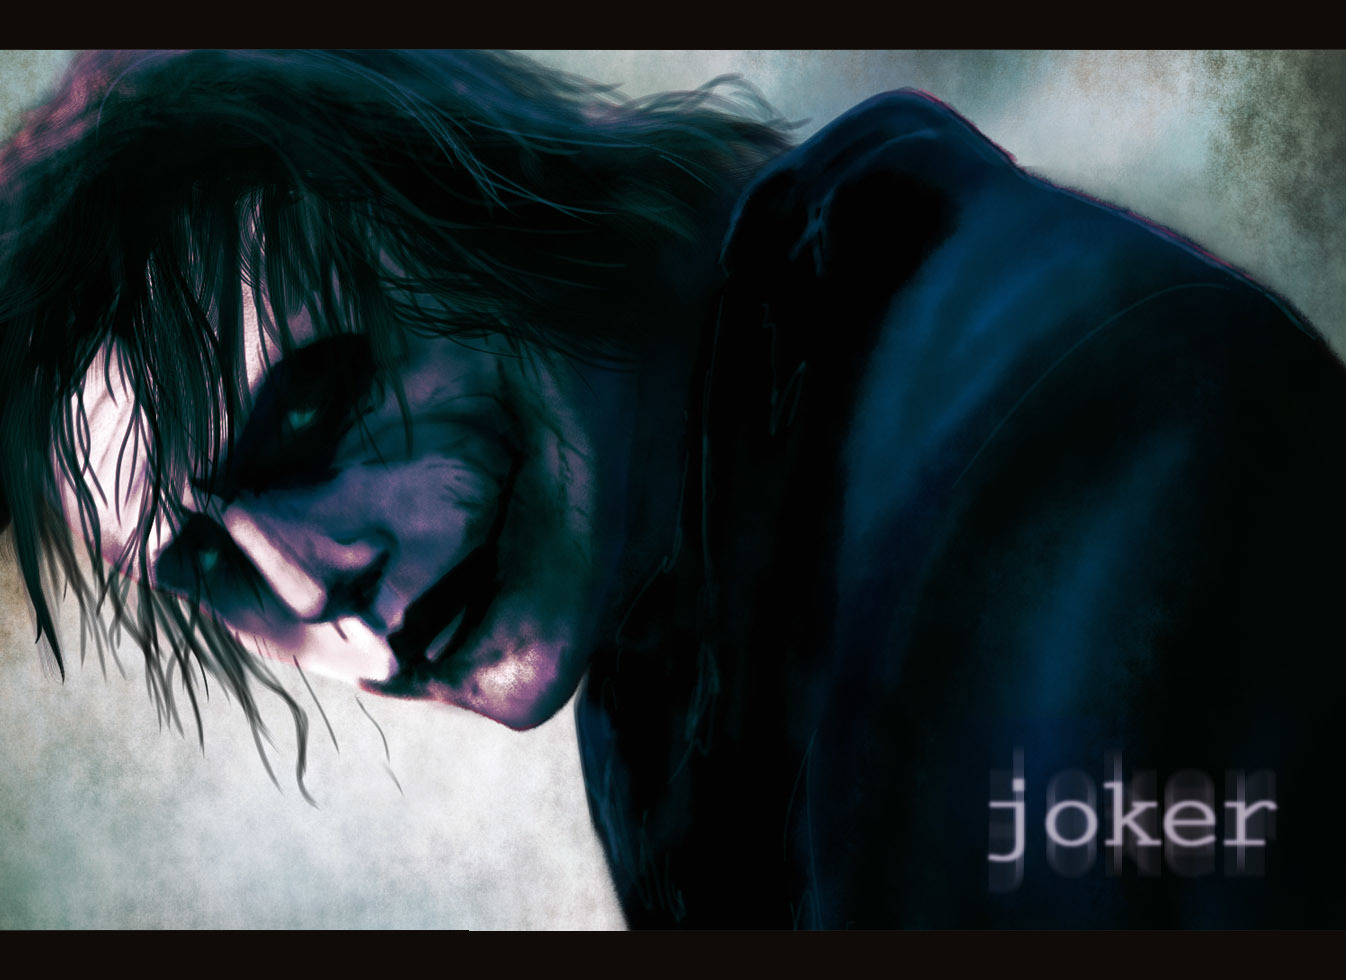 The joker heath Ledger HD Wallpaper